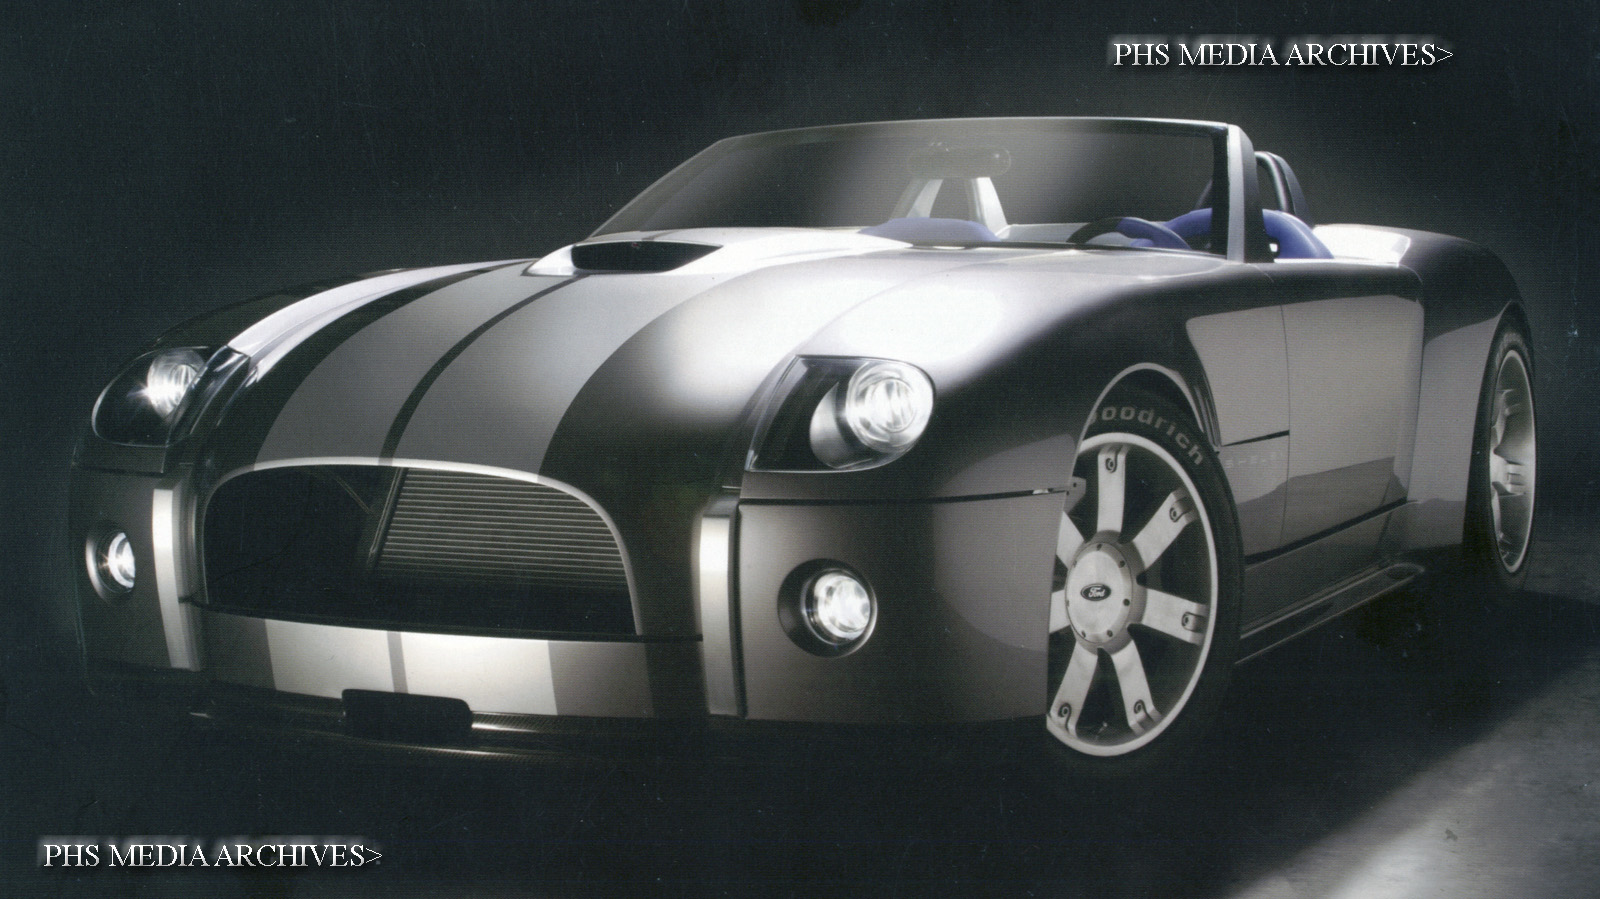 427 shelby cobra concept was stunning and would ve been a great rival to the viper